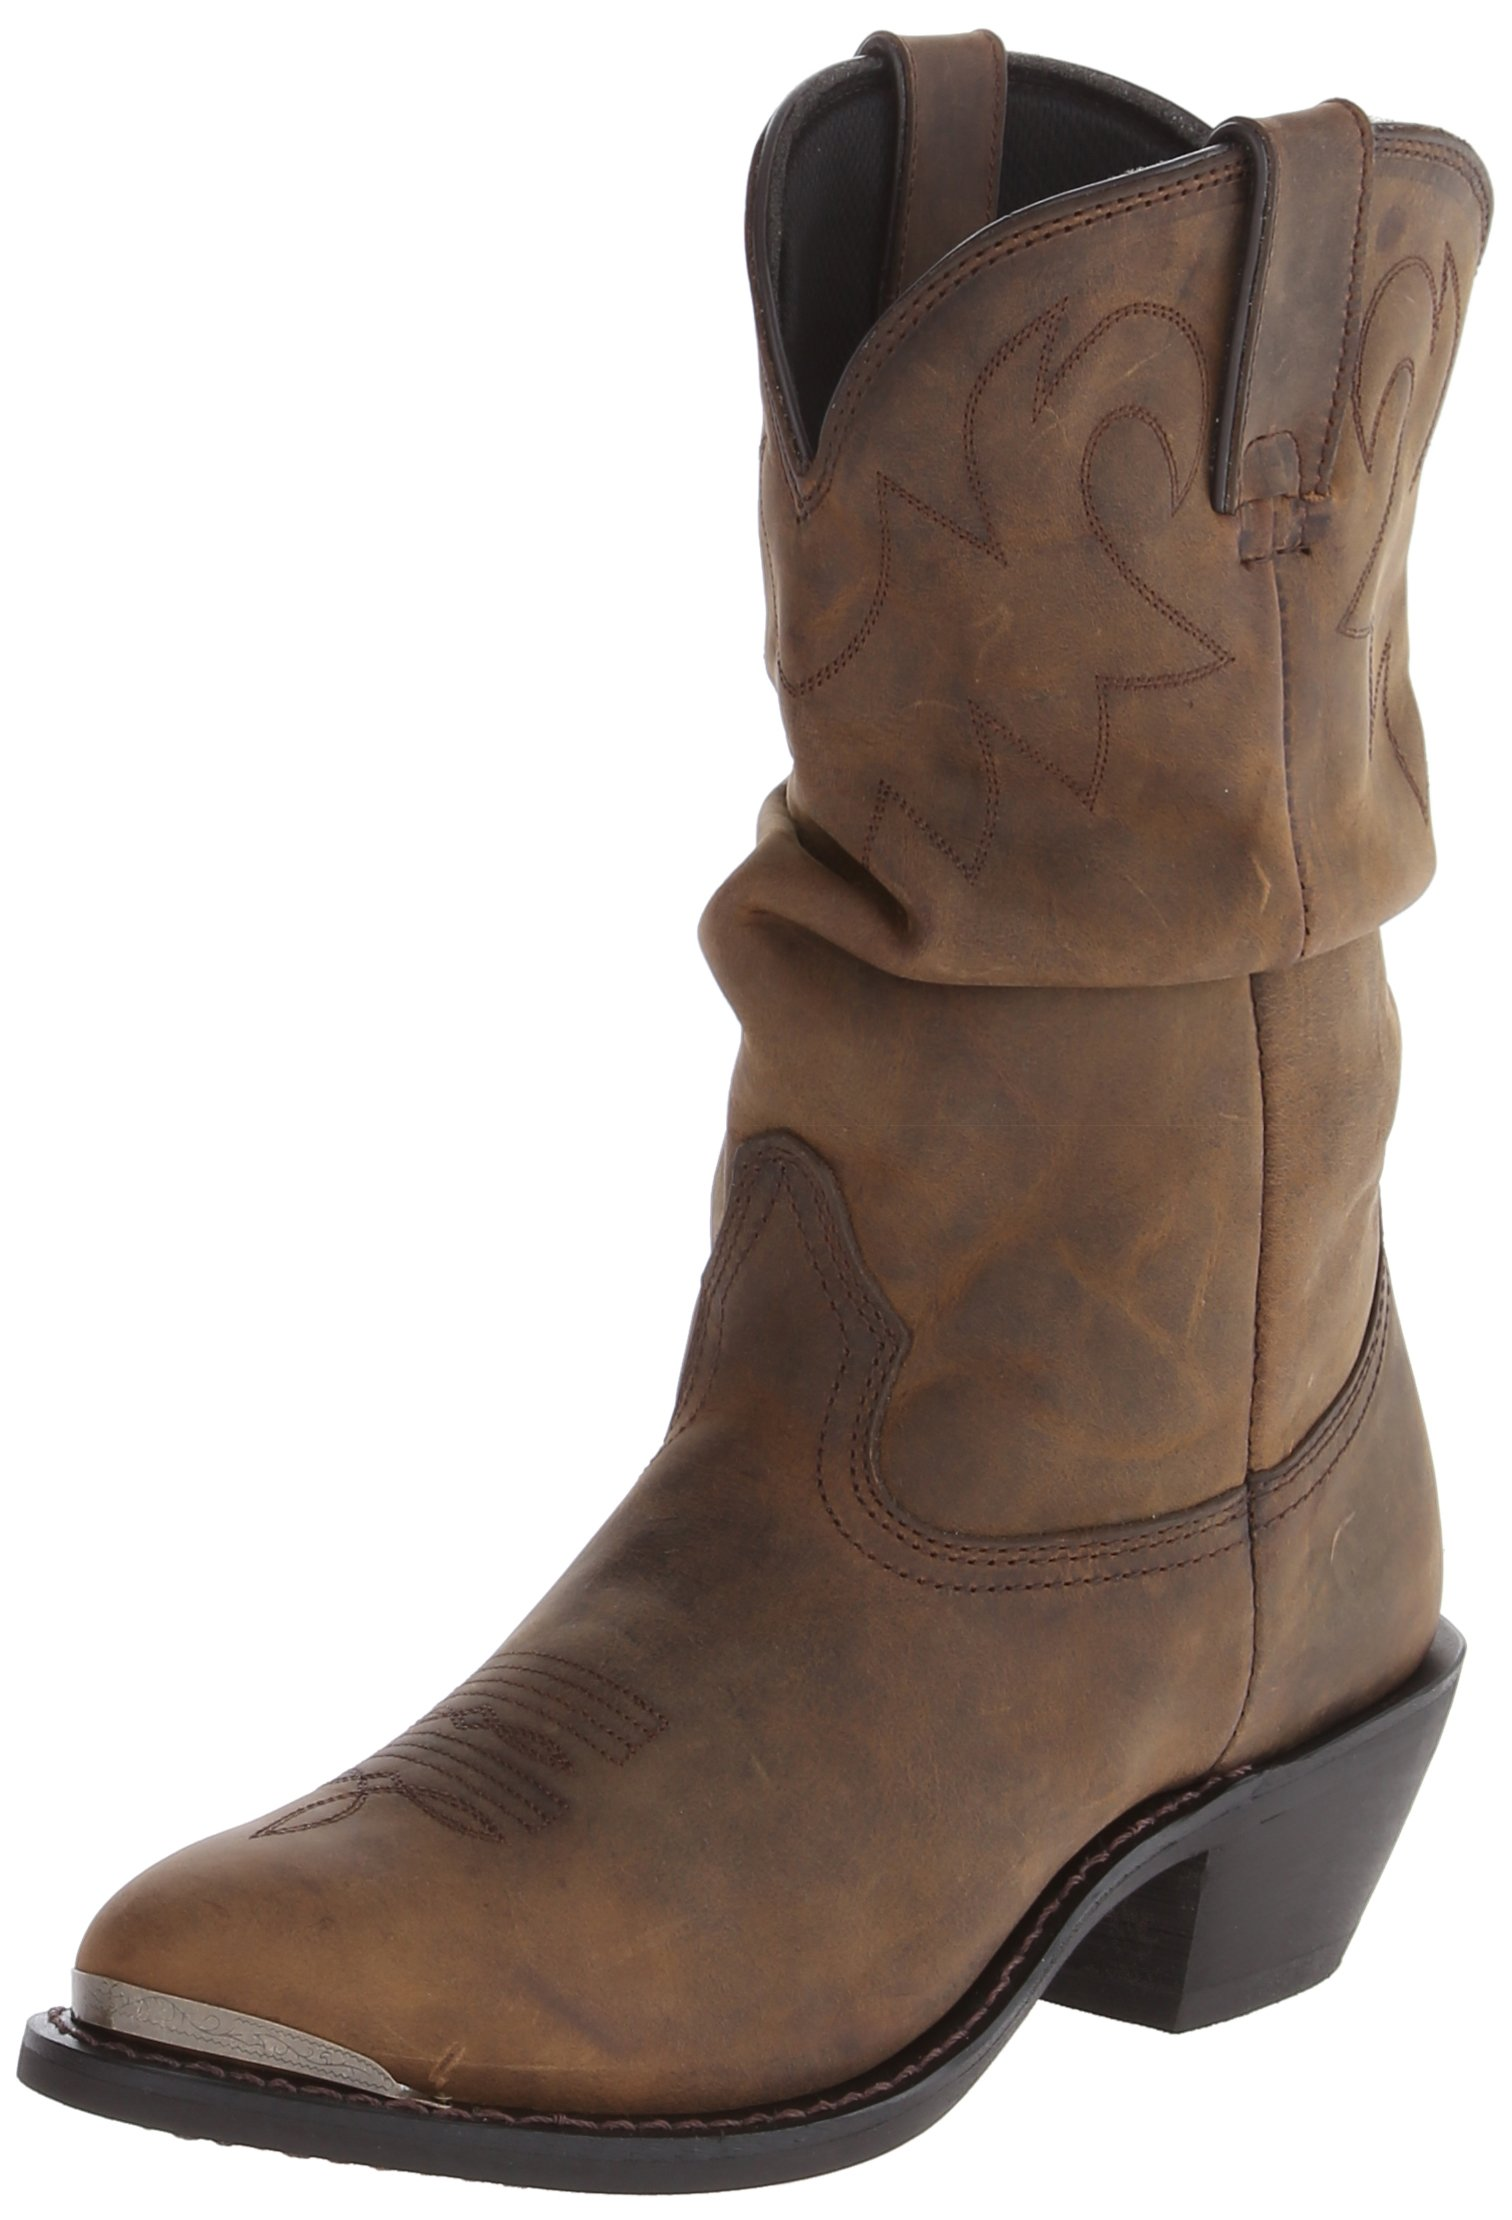 Durango Women's RD542 Slouch 11'' Western Boot,Distressed Tan,8 M US by Durango